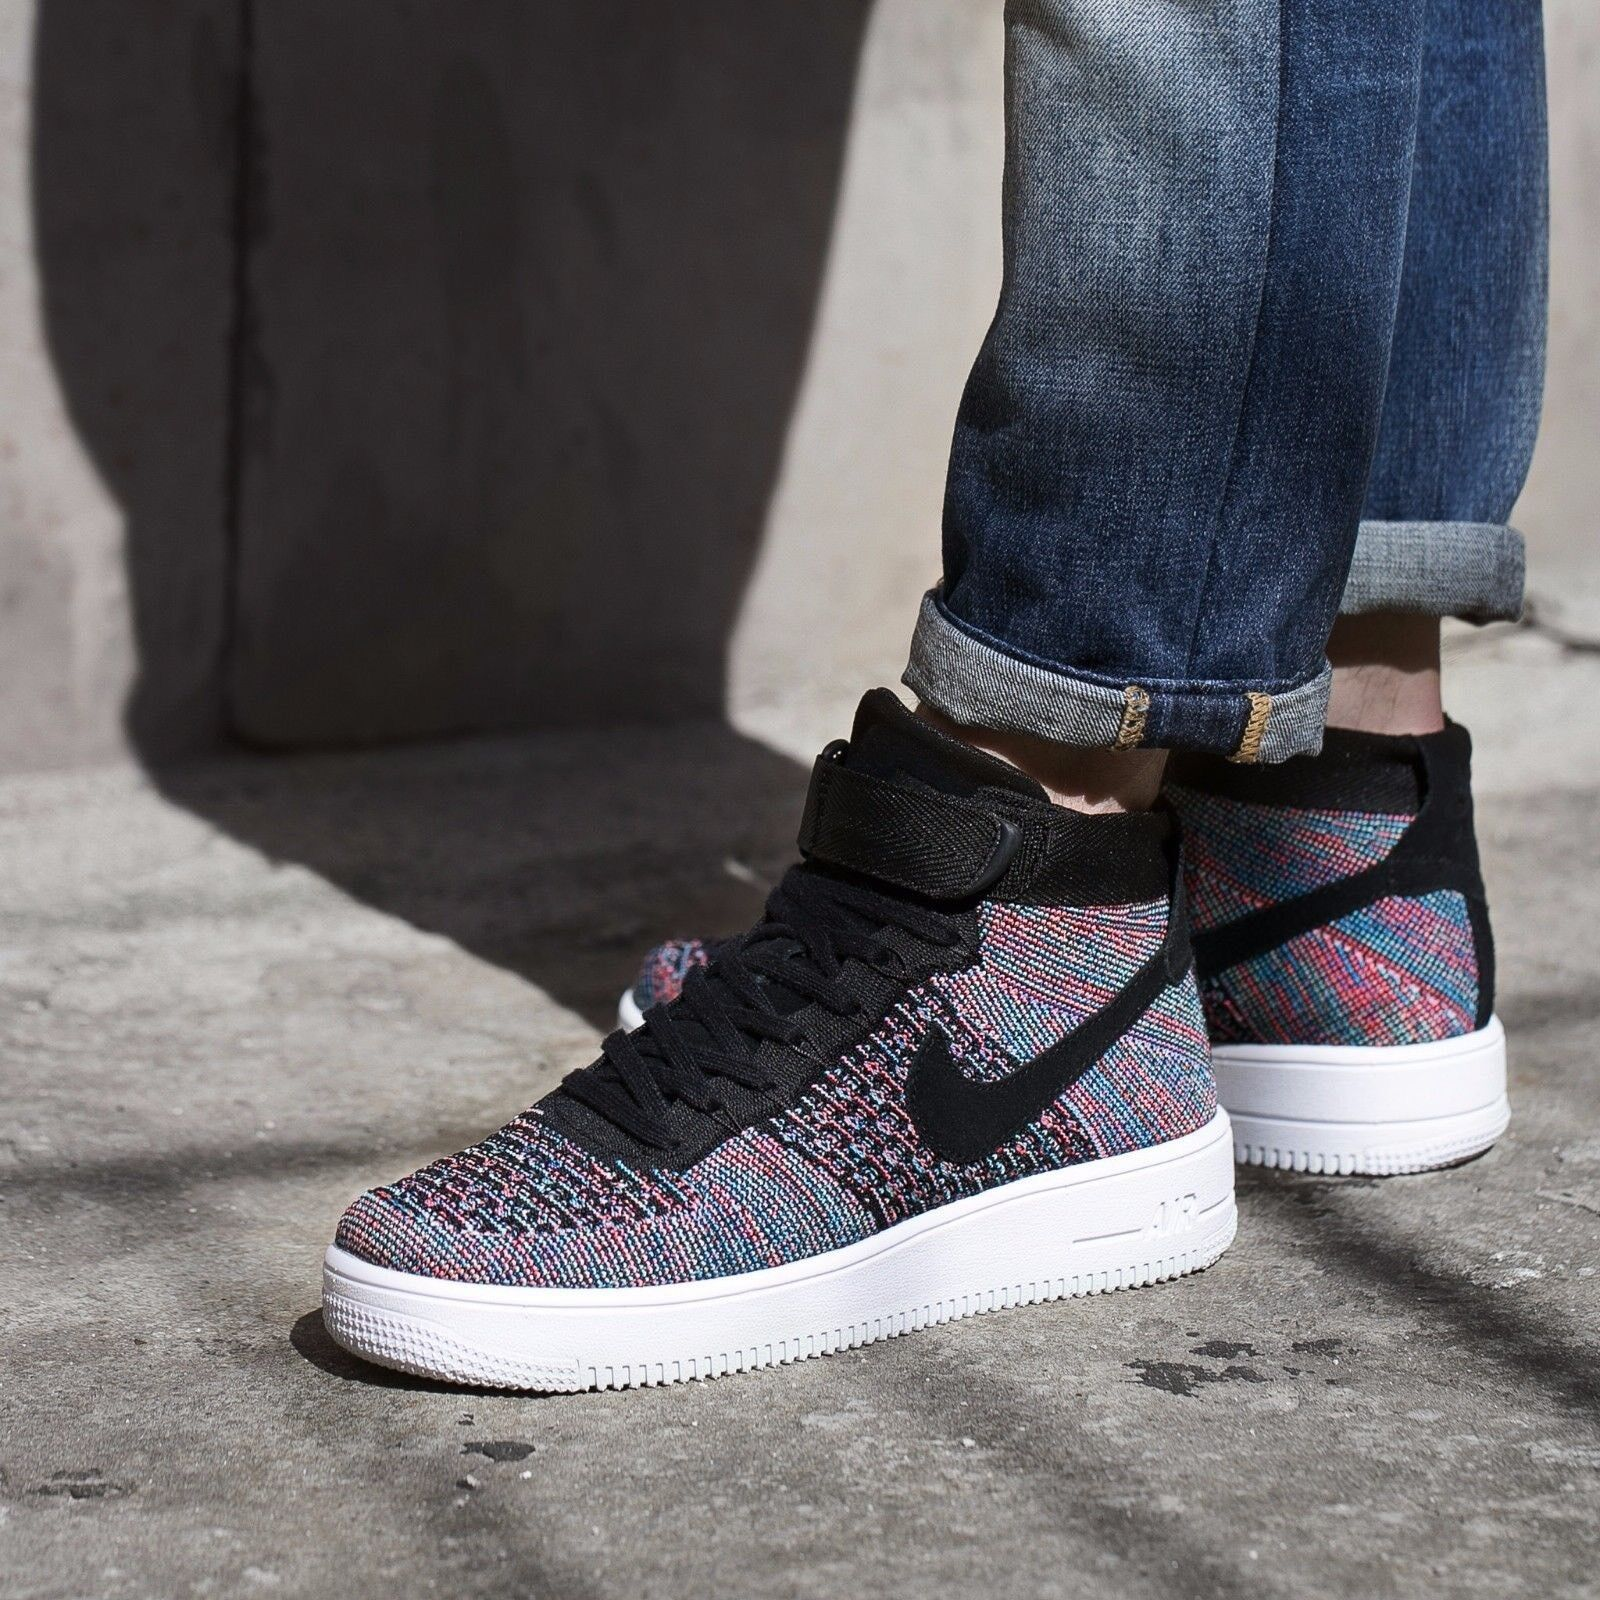 9c9c680c23b1 NIKE AIR FORCE 1 ULTRA FLYKNIT HOT PUNCH 602 RARE COLOR MEN S SHOES ...